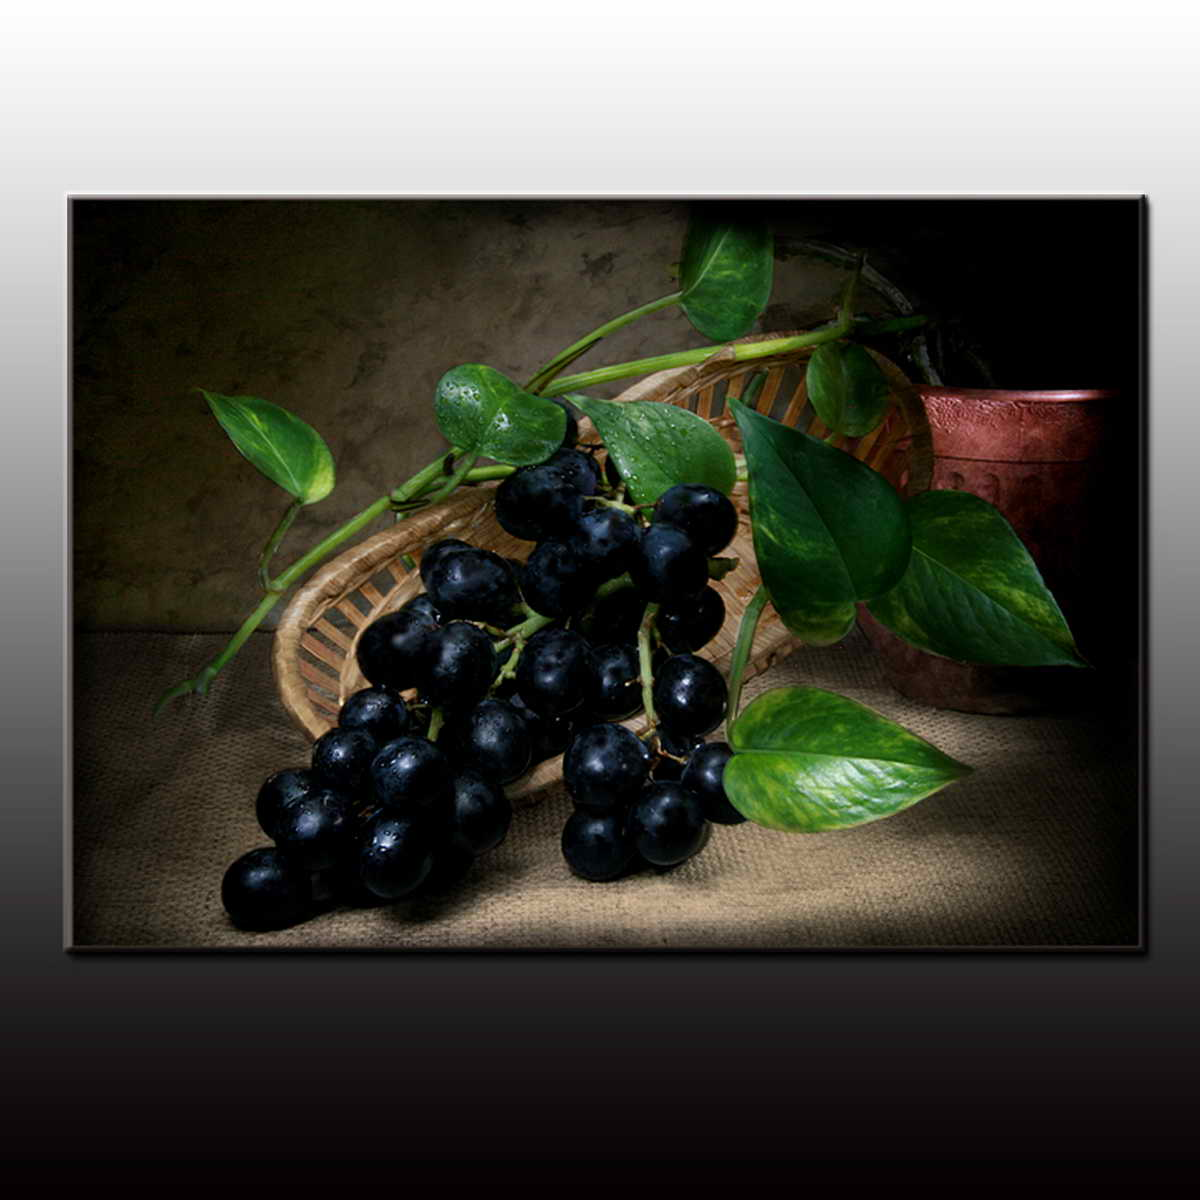 BC13-8151 Handmade Impressionist famous Still Life Fruit Oil Painting on canvas